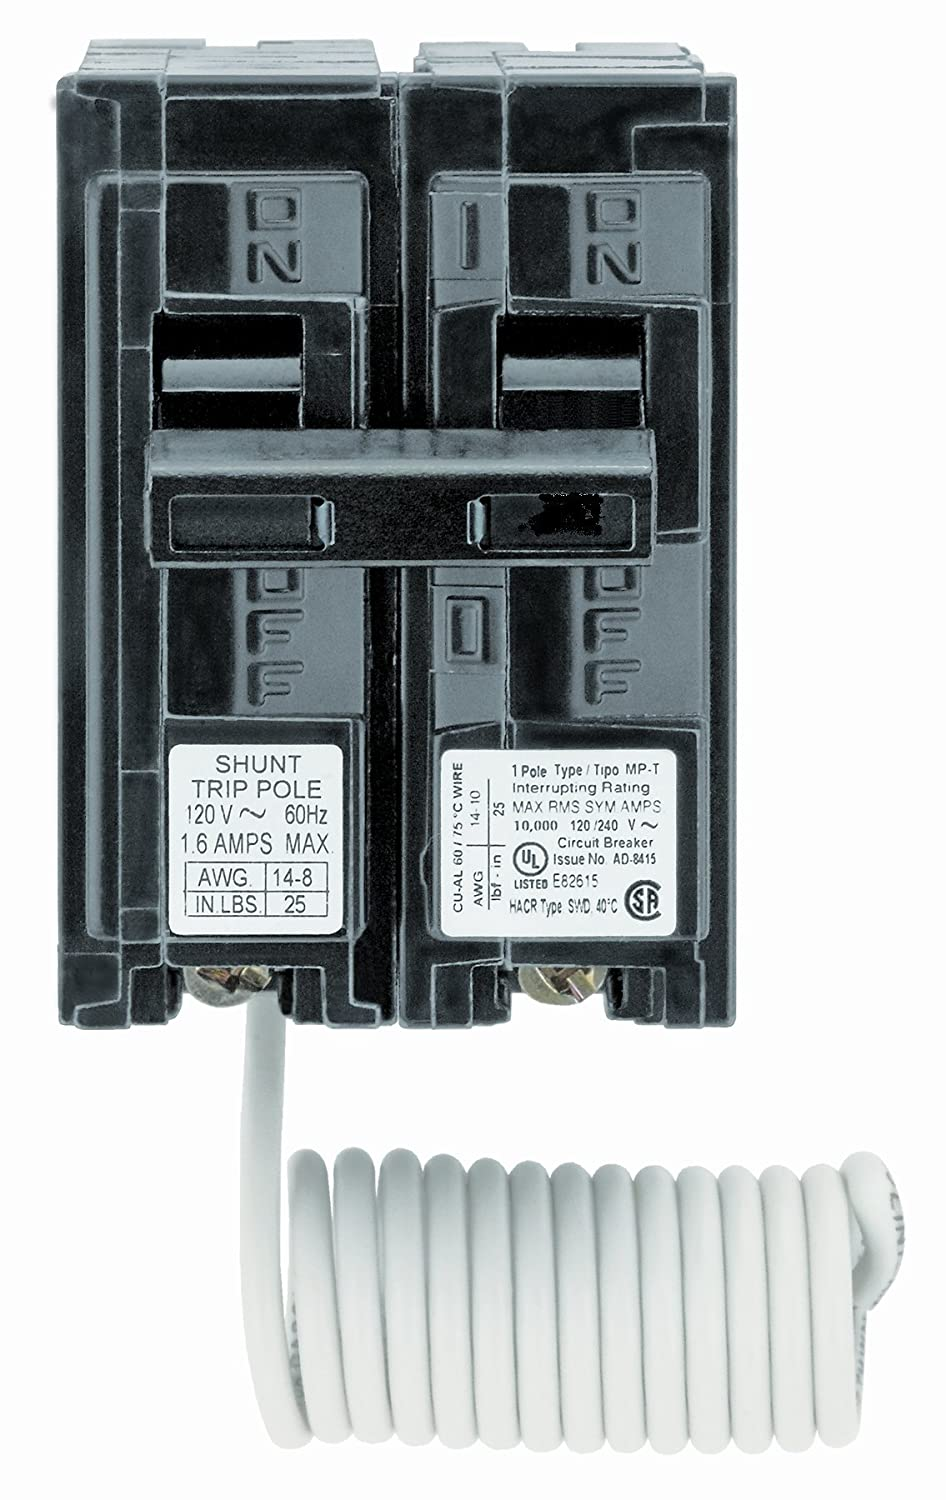 Siemens Q12000s01 120 Volt Type Mp T 20 Amp Circuit Breaker With Murray 2 In Doublepole Gfci Shunt Trip Single Pole Ground Fault Interrupters